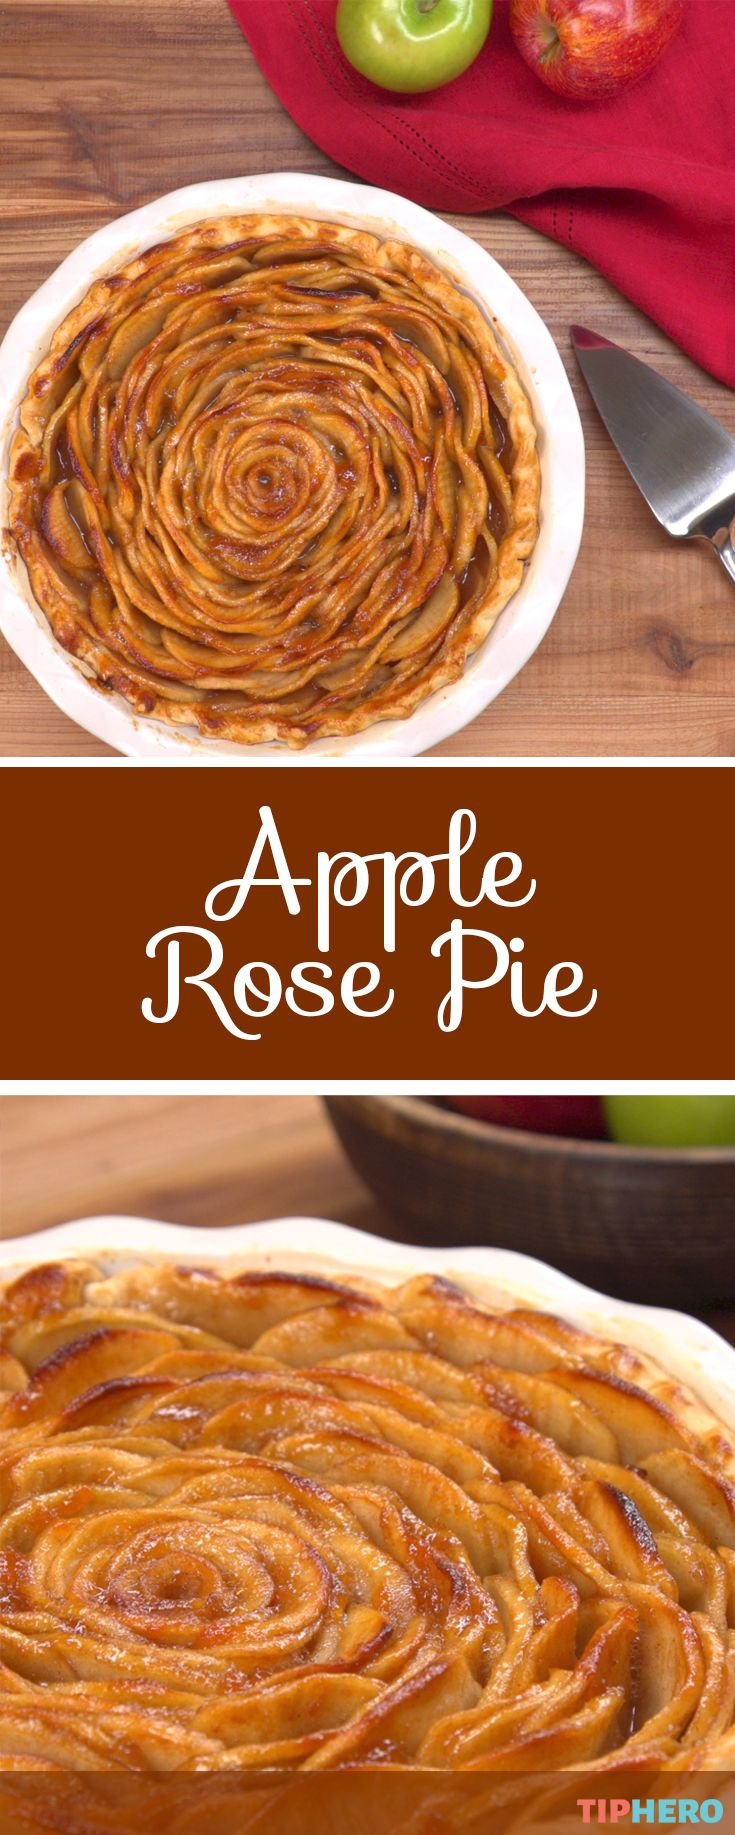 rosh hashanah apple roses